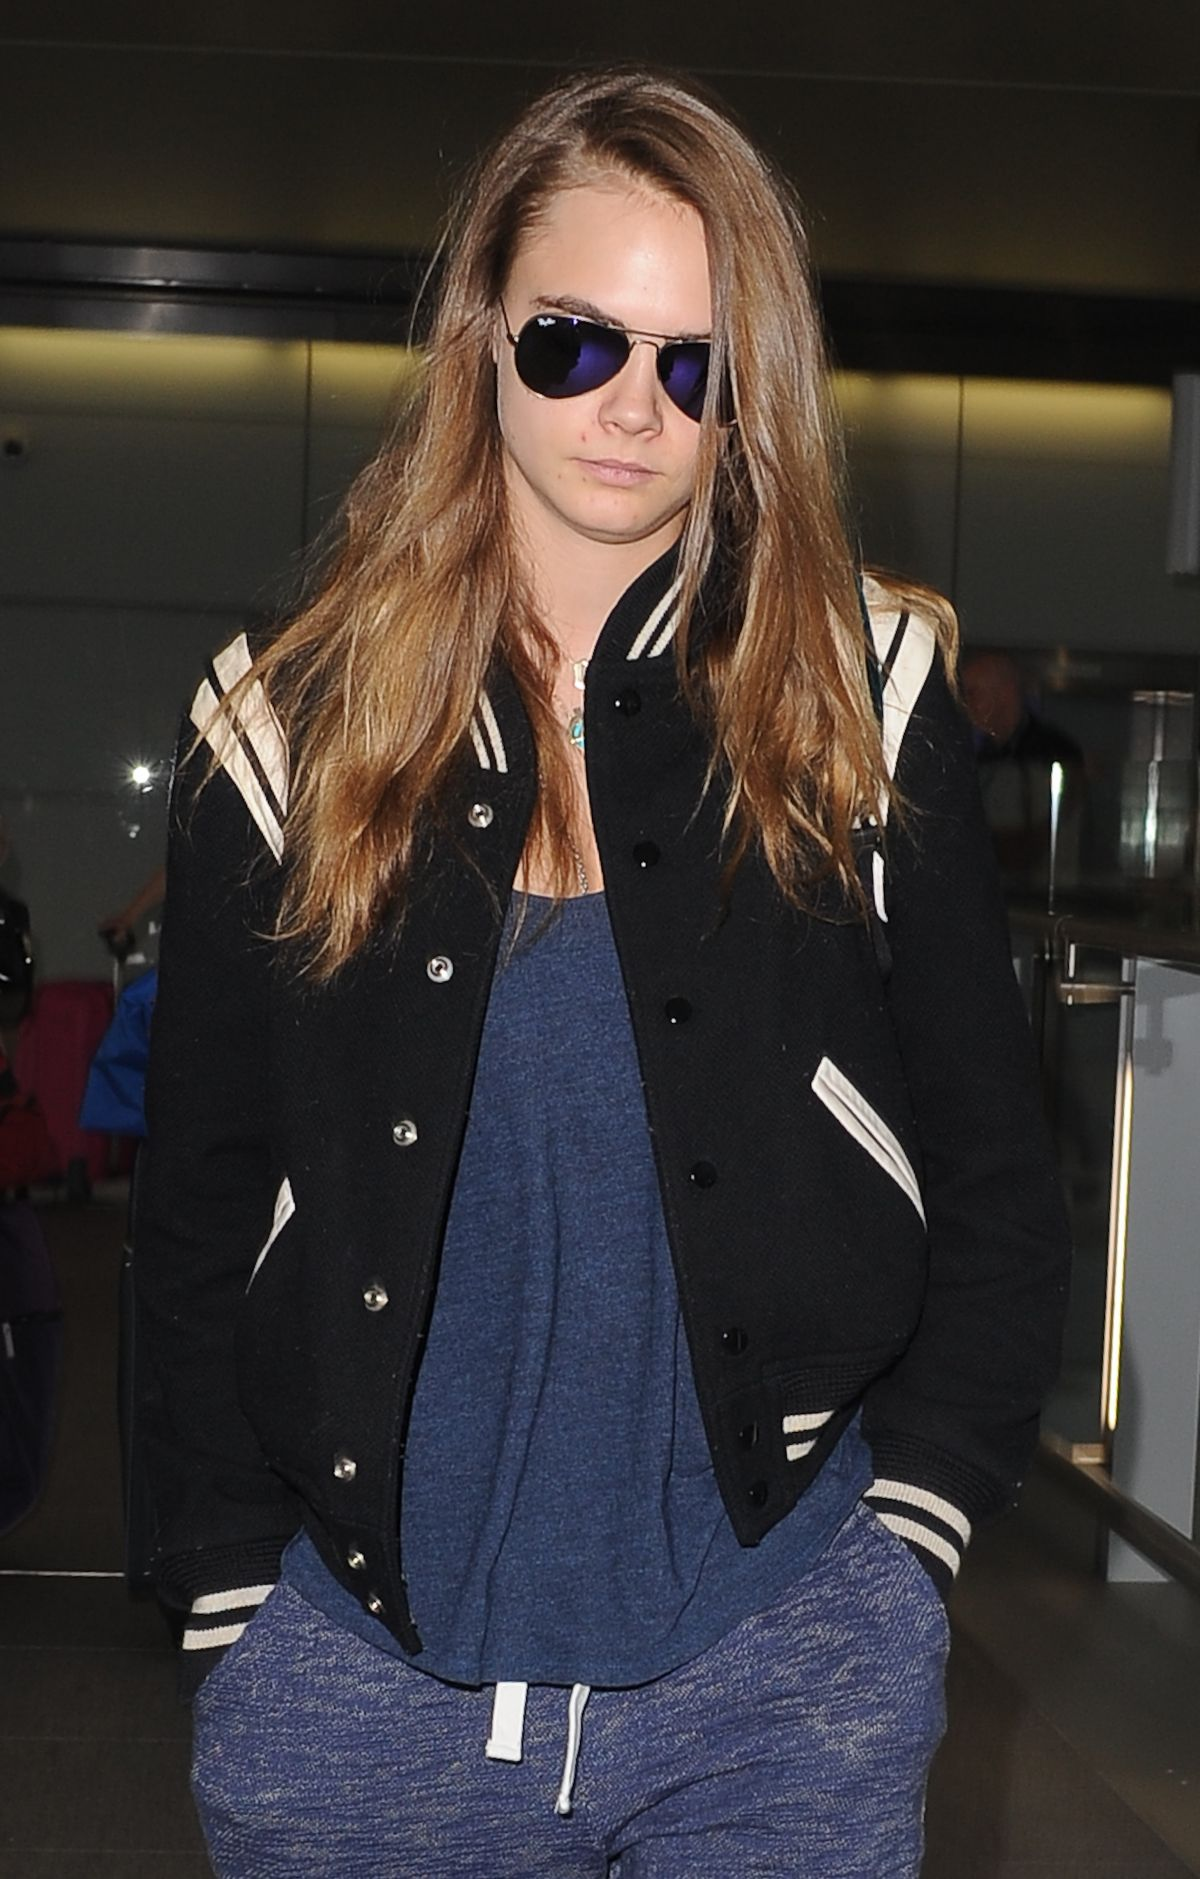 CARA DELEVINGNE at Heatrow Airport in London 06/29/2015